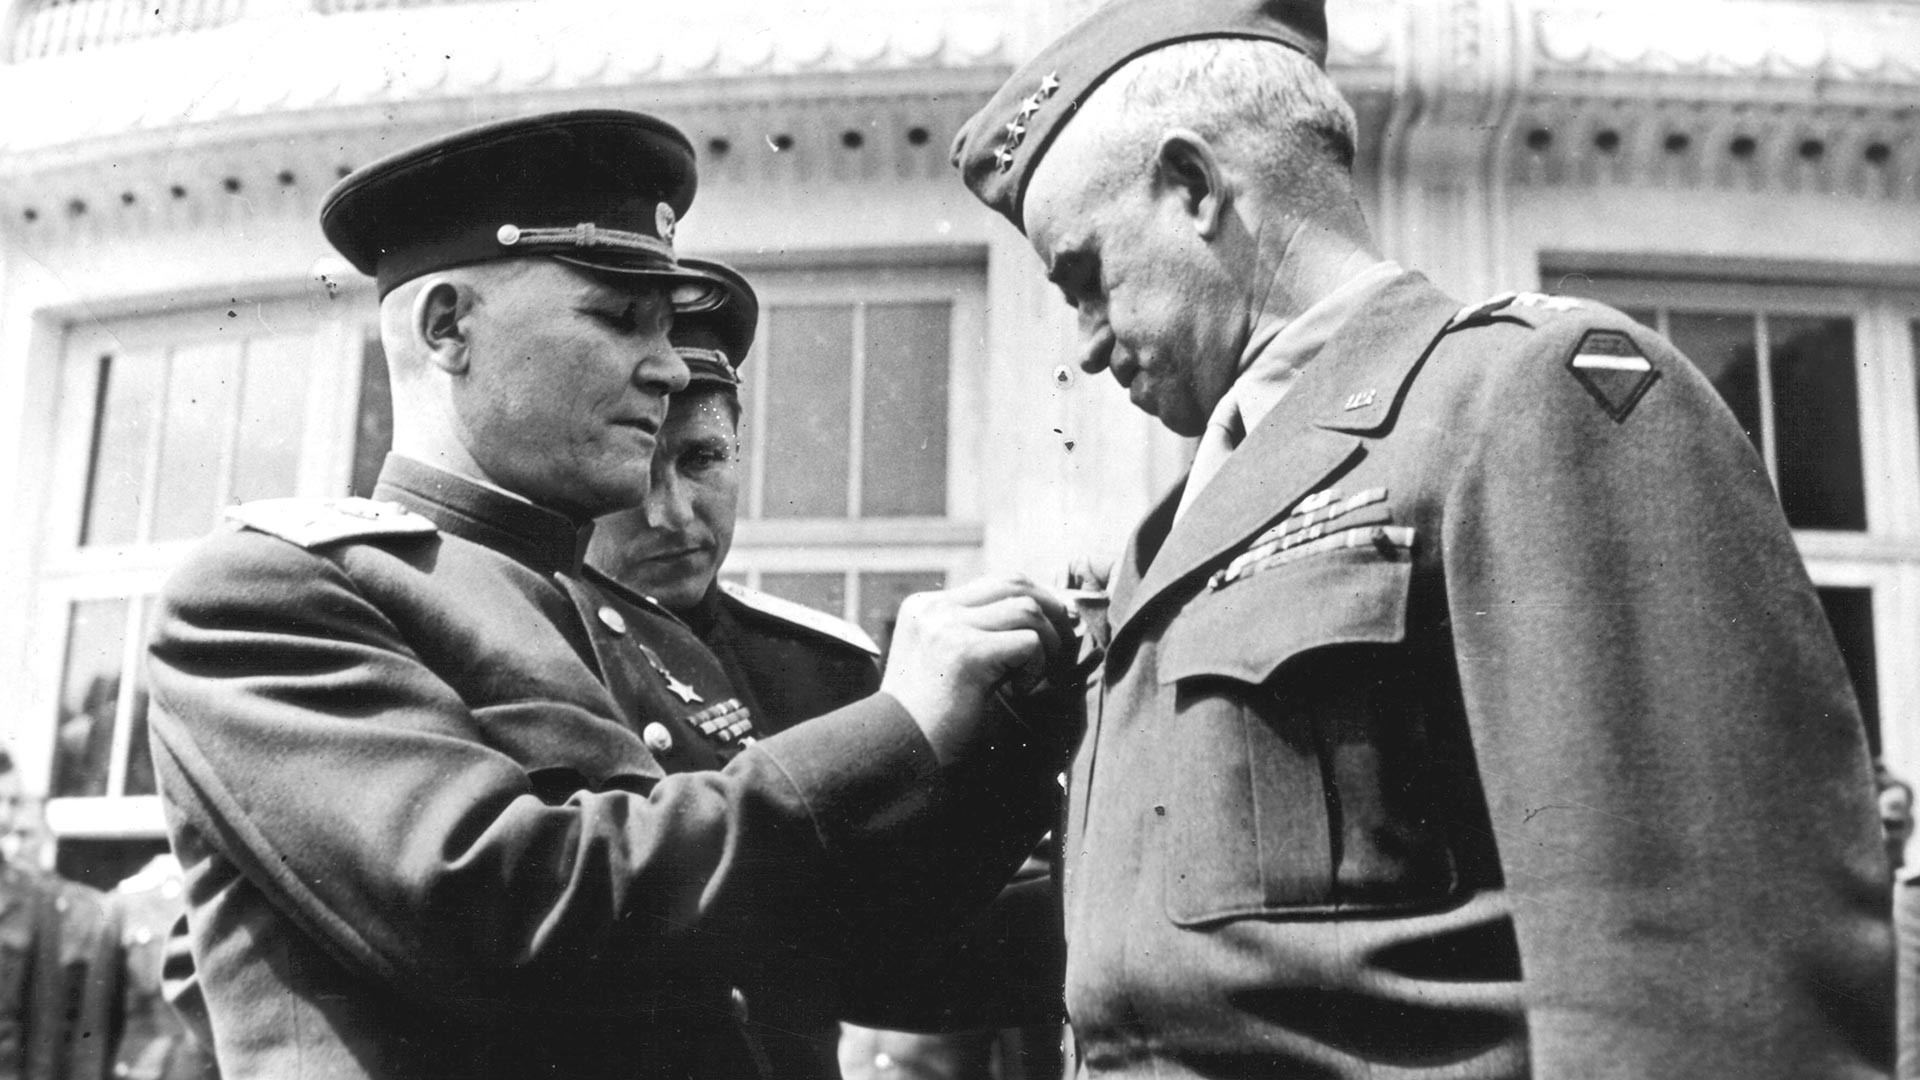 Marshal Ivan S, Koniev, Commander of the 1st Ukrainian Army Group (left), presents the Soviet Order of Suvorov to General Omar N, Bradley, Commander of the 12th US Army Group, May 17, 1945 at Bad Wildungen (Germany).